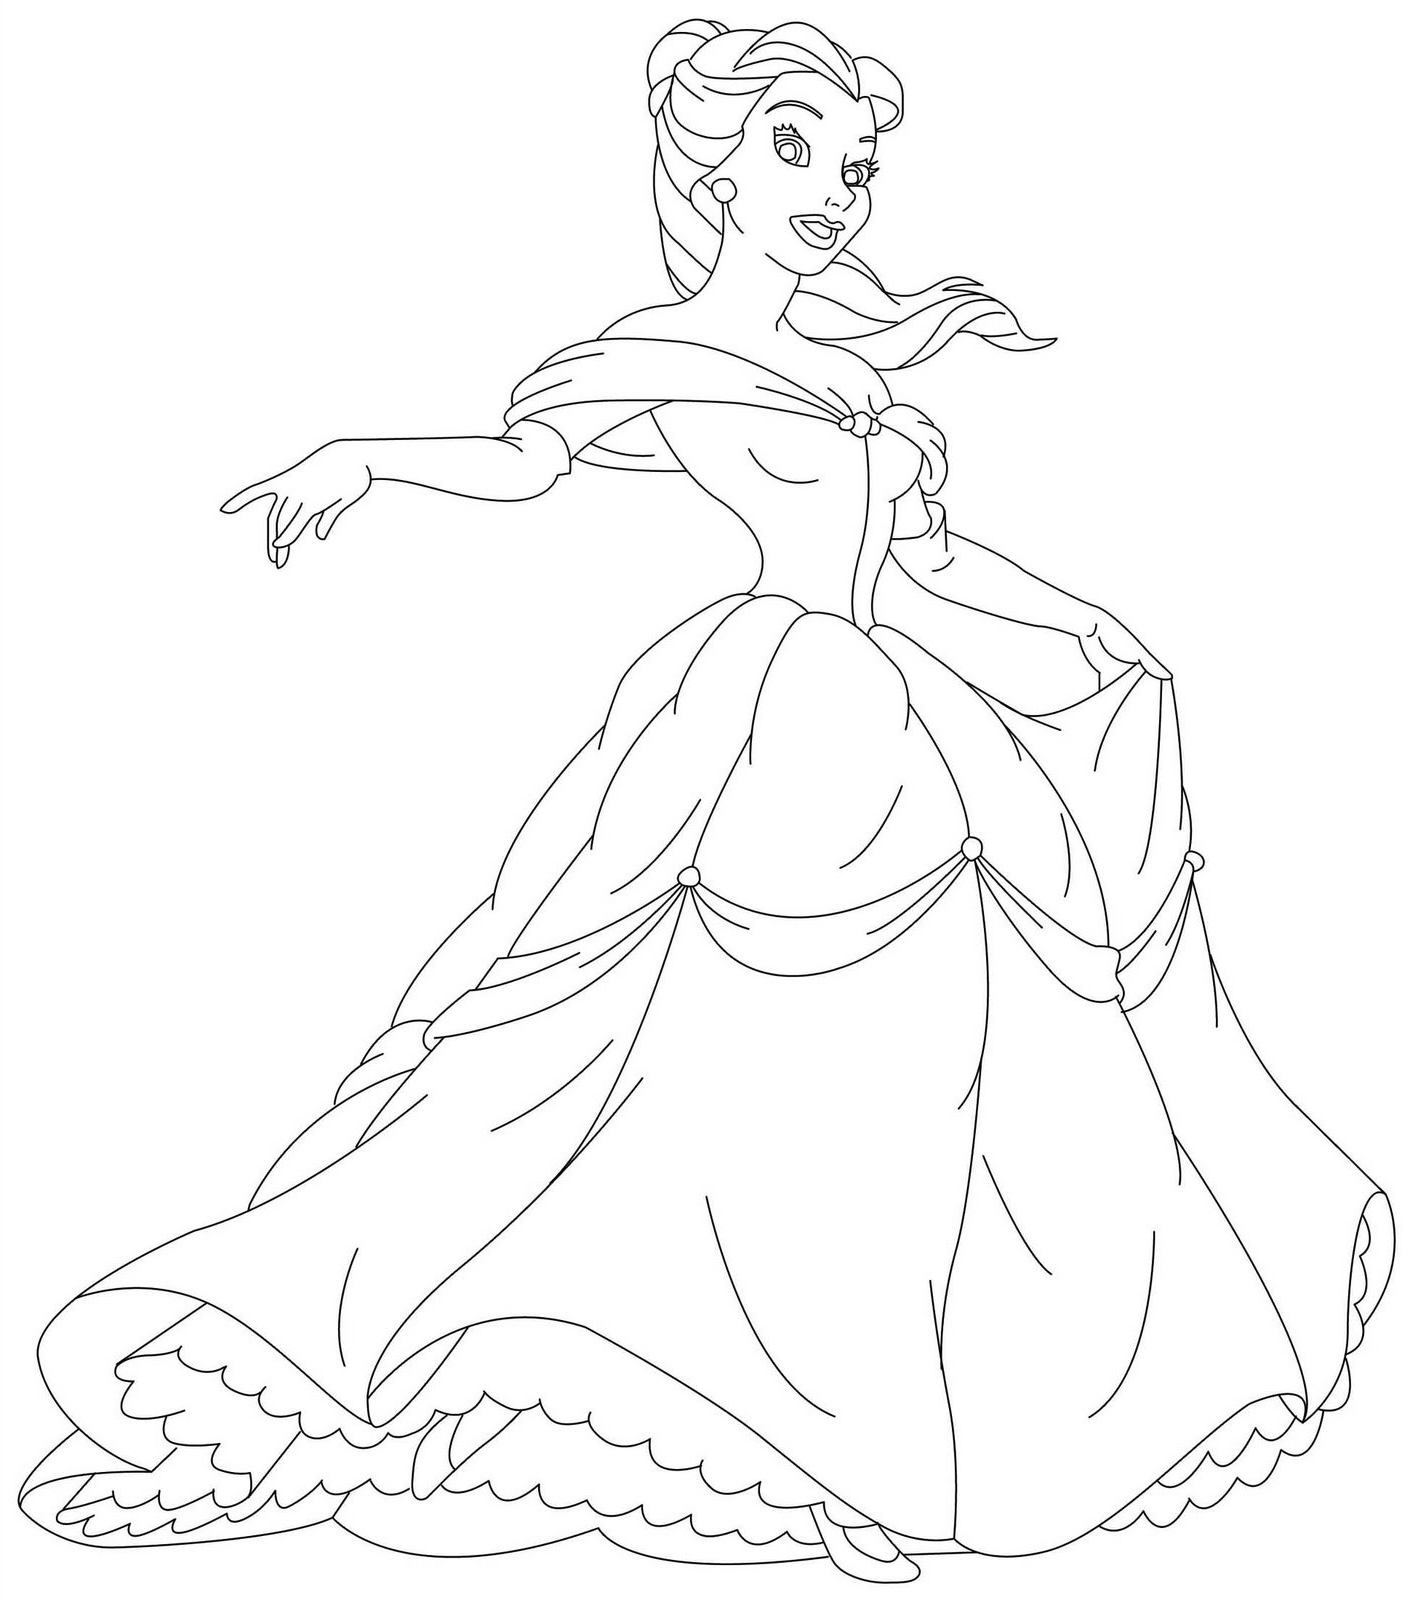 coloring pages free online - photo#27